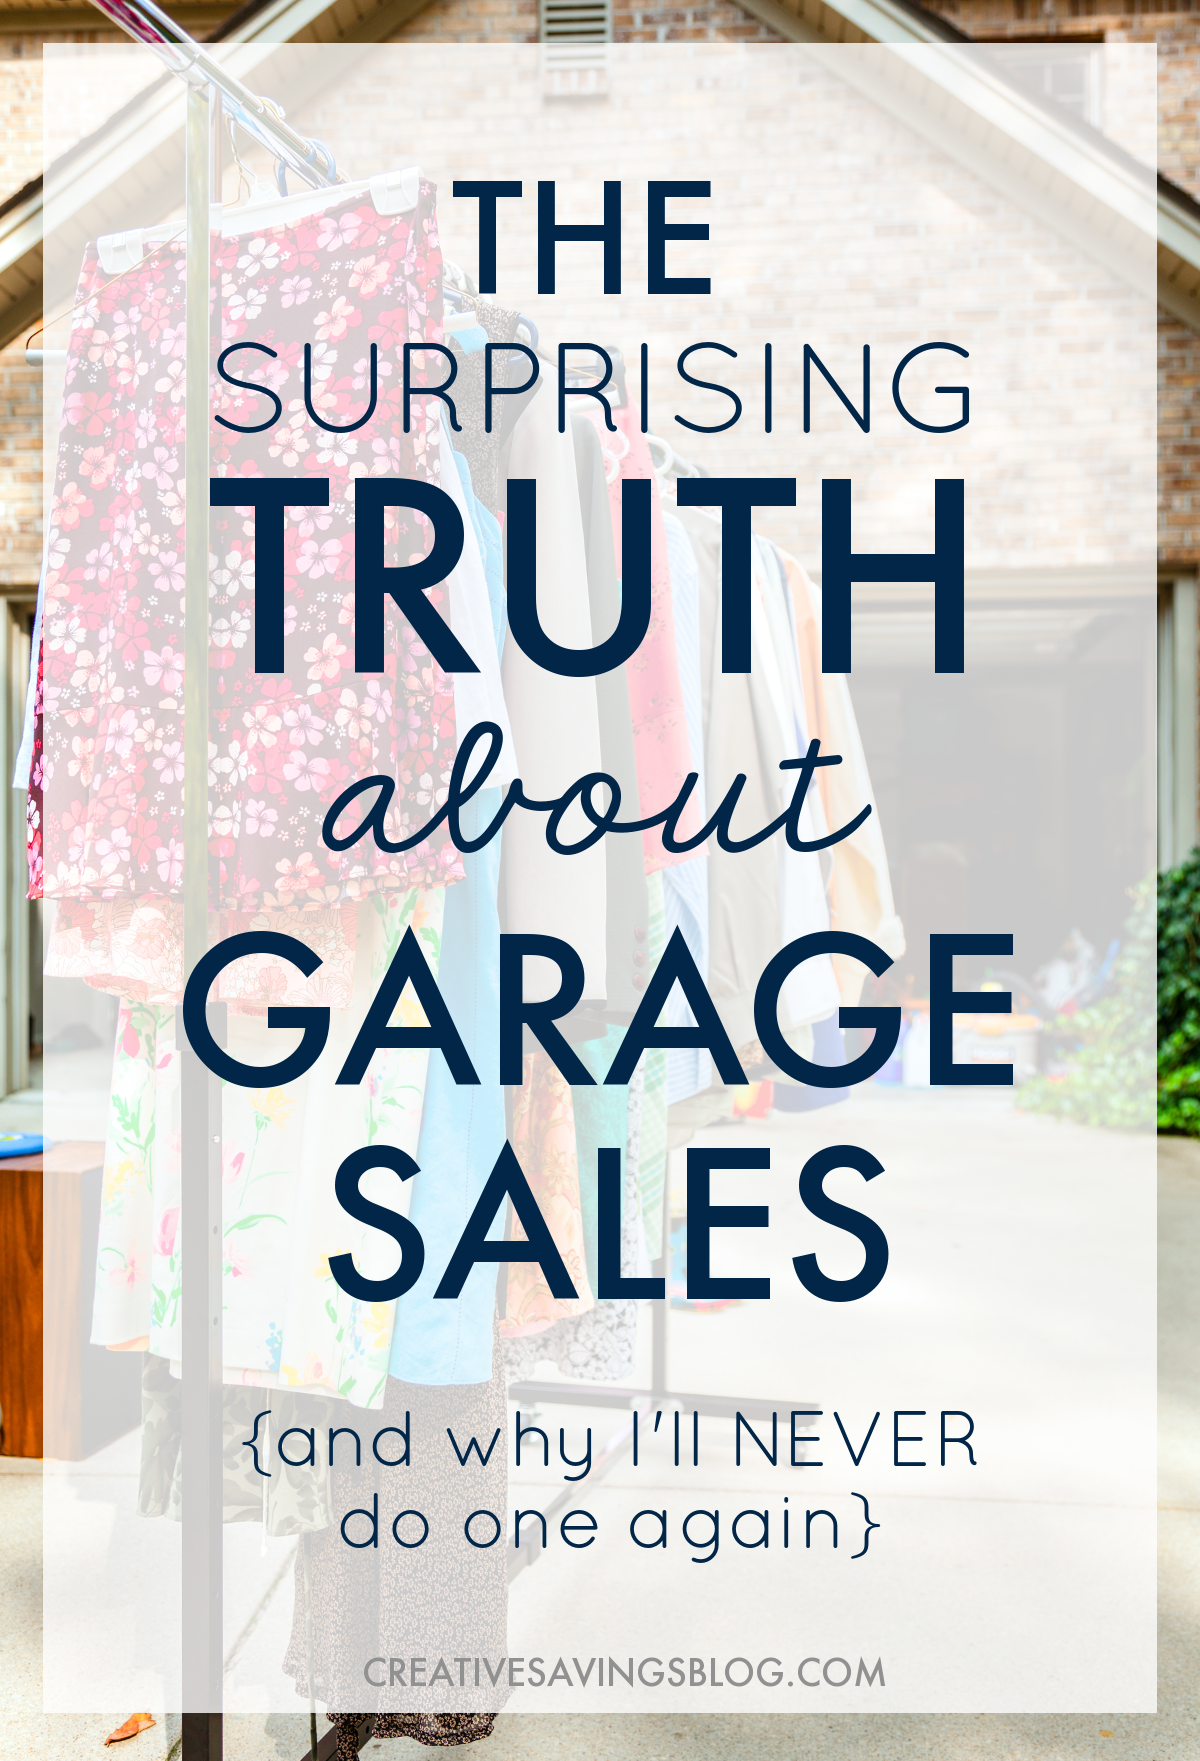 As I looked for garage sale ideas I came across this post that challenged me to wonder: Is It Worth It? I can't believe how much sense this makes! Work for several days preparing a sale, sit outside in the sun all day, force myself to talk awkwardly to random strangers, all for fifty bucks! Yeah, I'm going to take this girls #advice and #savetime. I'll just donate to charity instead. Bonus, I don't have to store #stuff any more while I wait for the next #garagesale. #garagesaleadvice